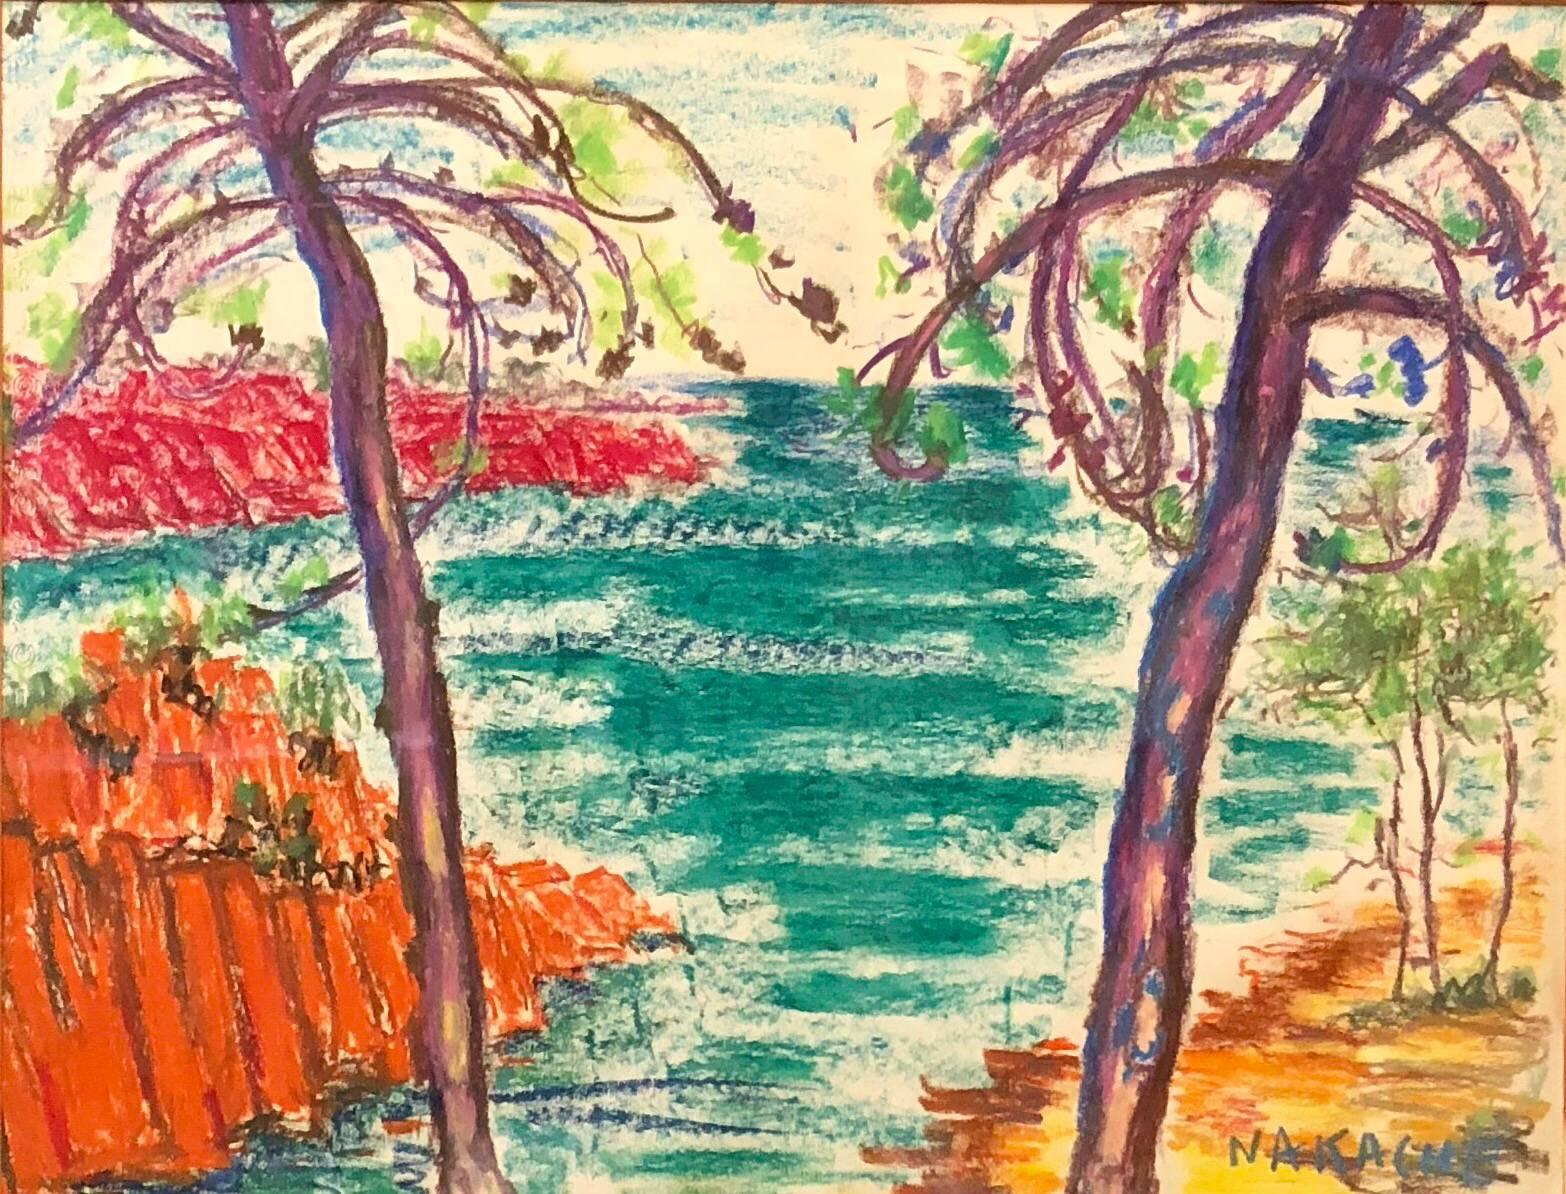 Algerian French Vibrant Colorful Expressionist Beach Scene Oil Pastel Drawing